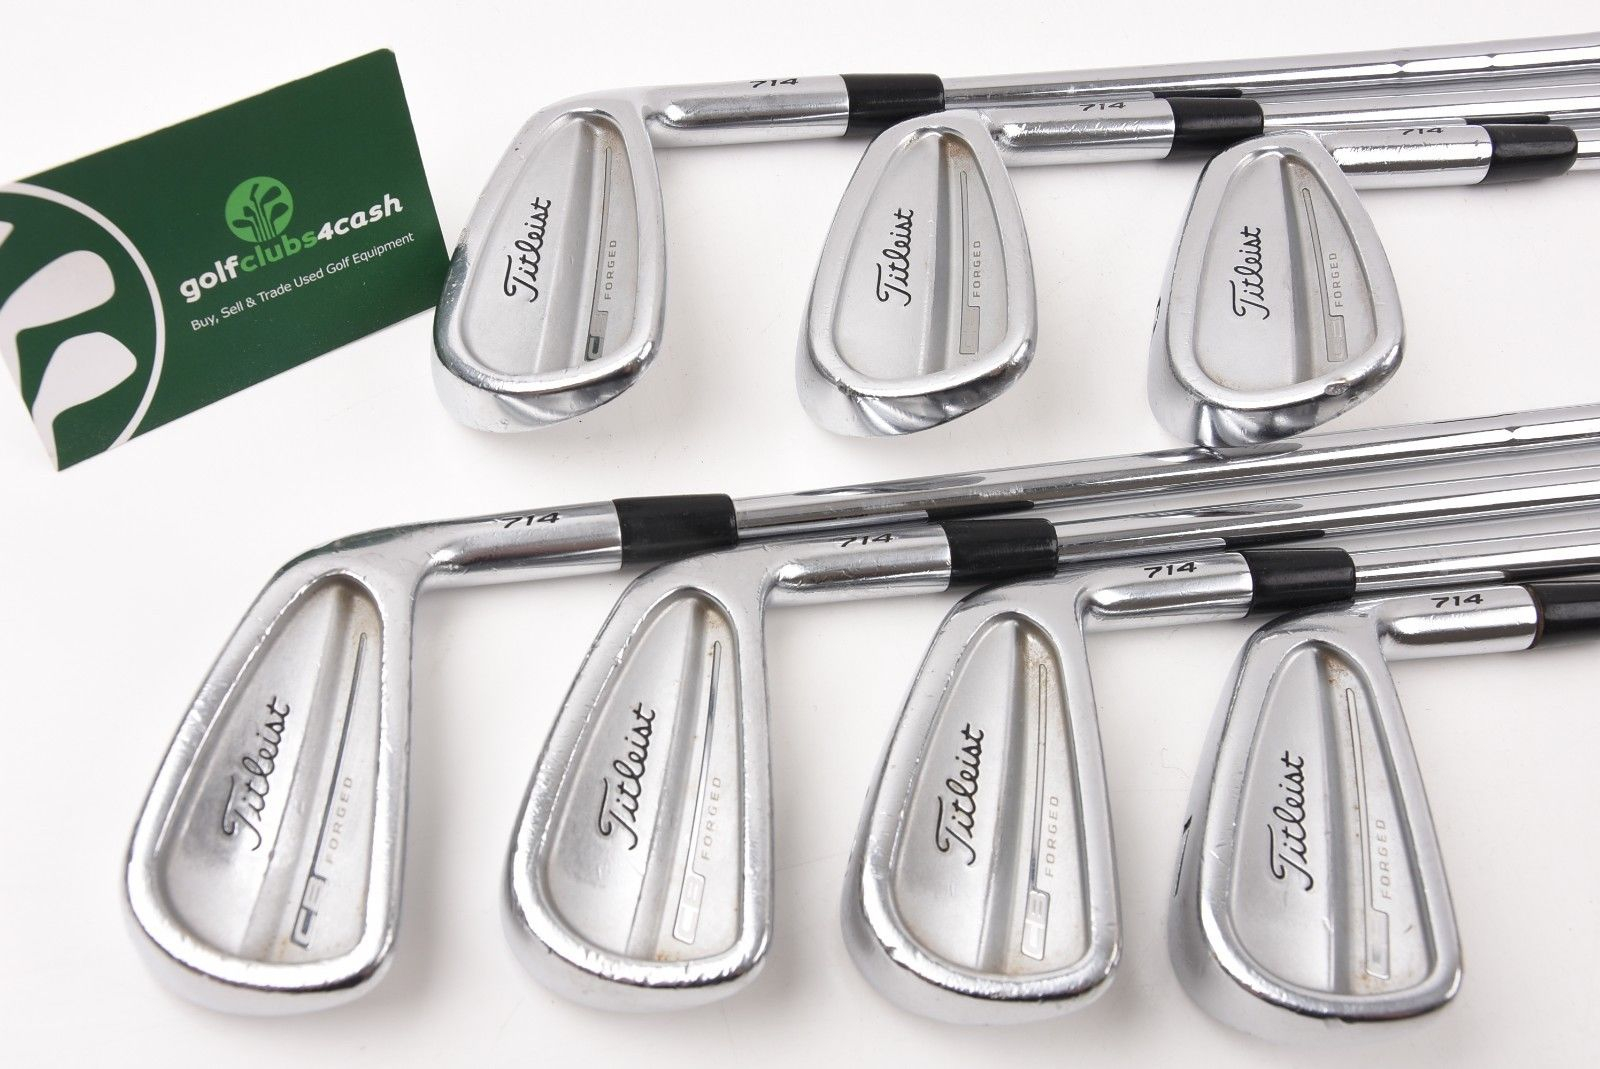 TITLEIST CB FORGED 714 IRONS / 4-PW / X-FLEX KBS TOUR SHAFTS / TIICB7025